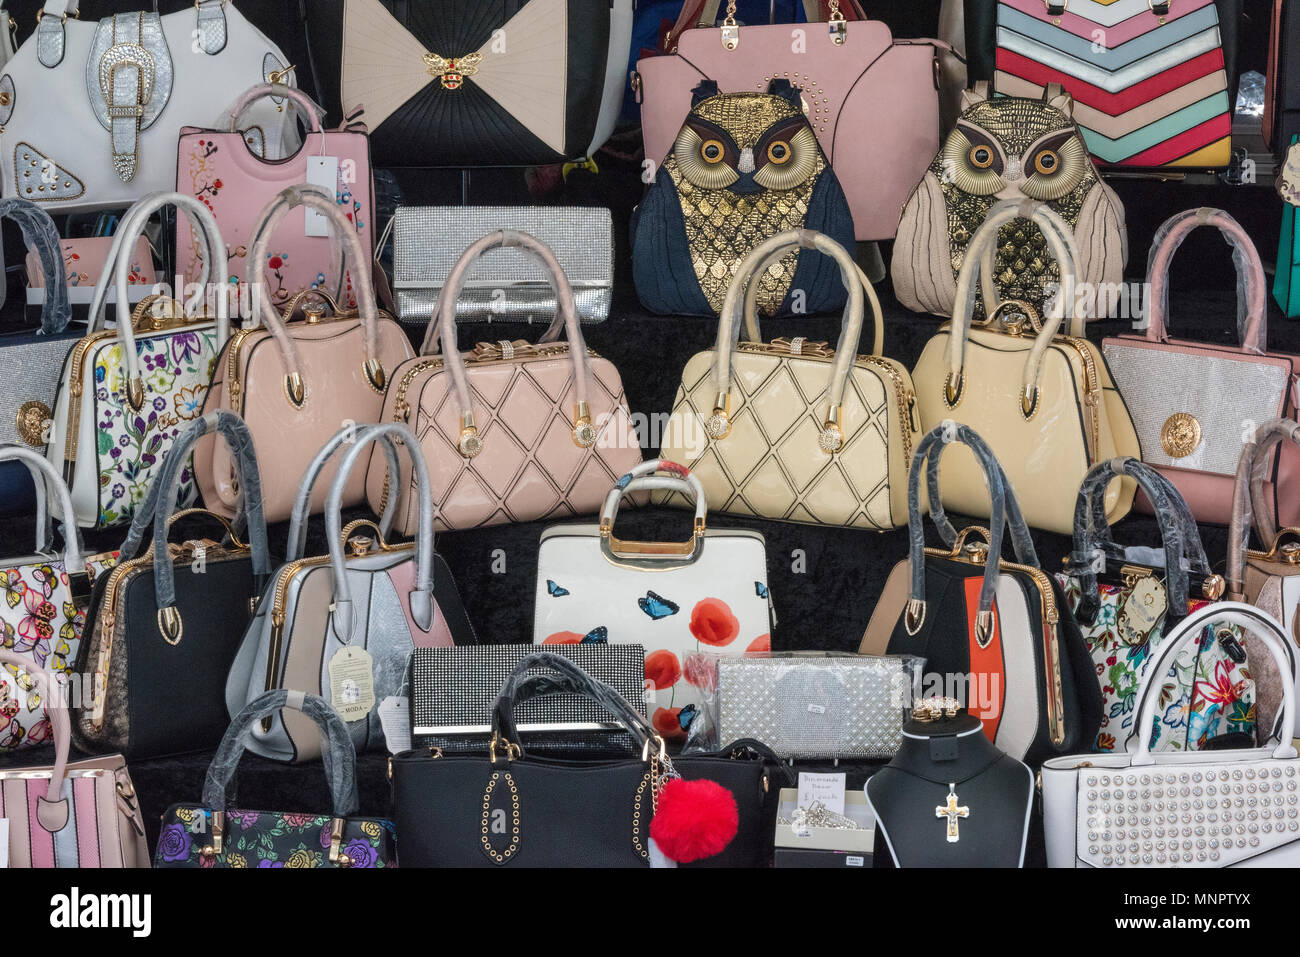 883d7432 a selection of designer handbags for sale on a market stall in a town  centre shopping